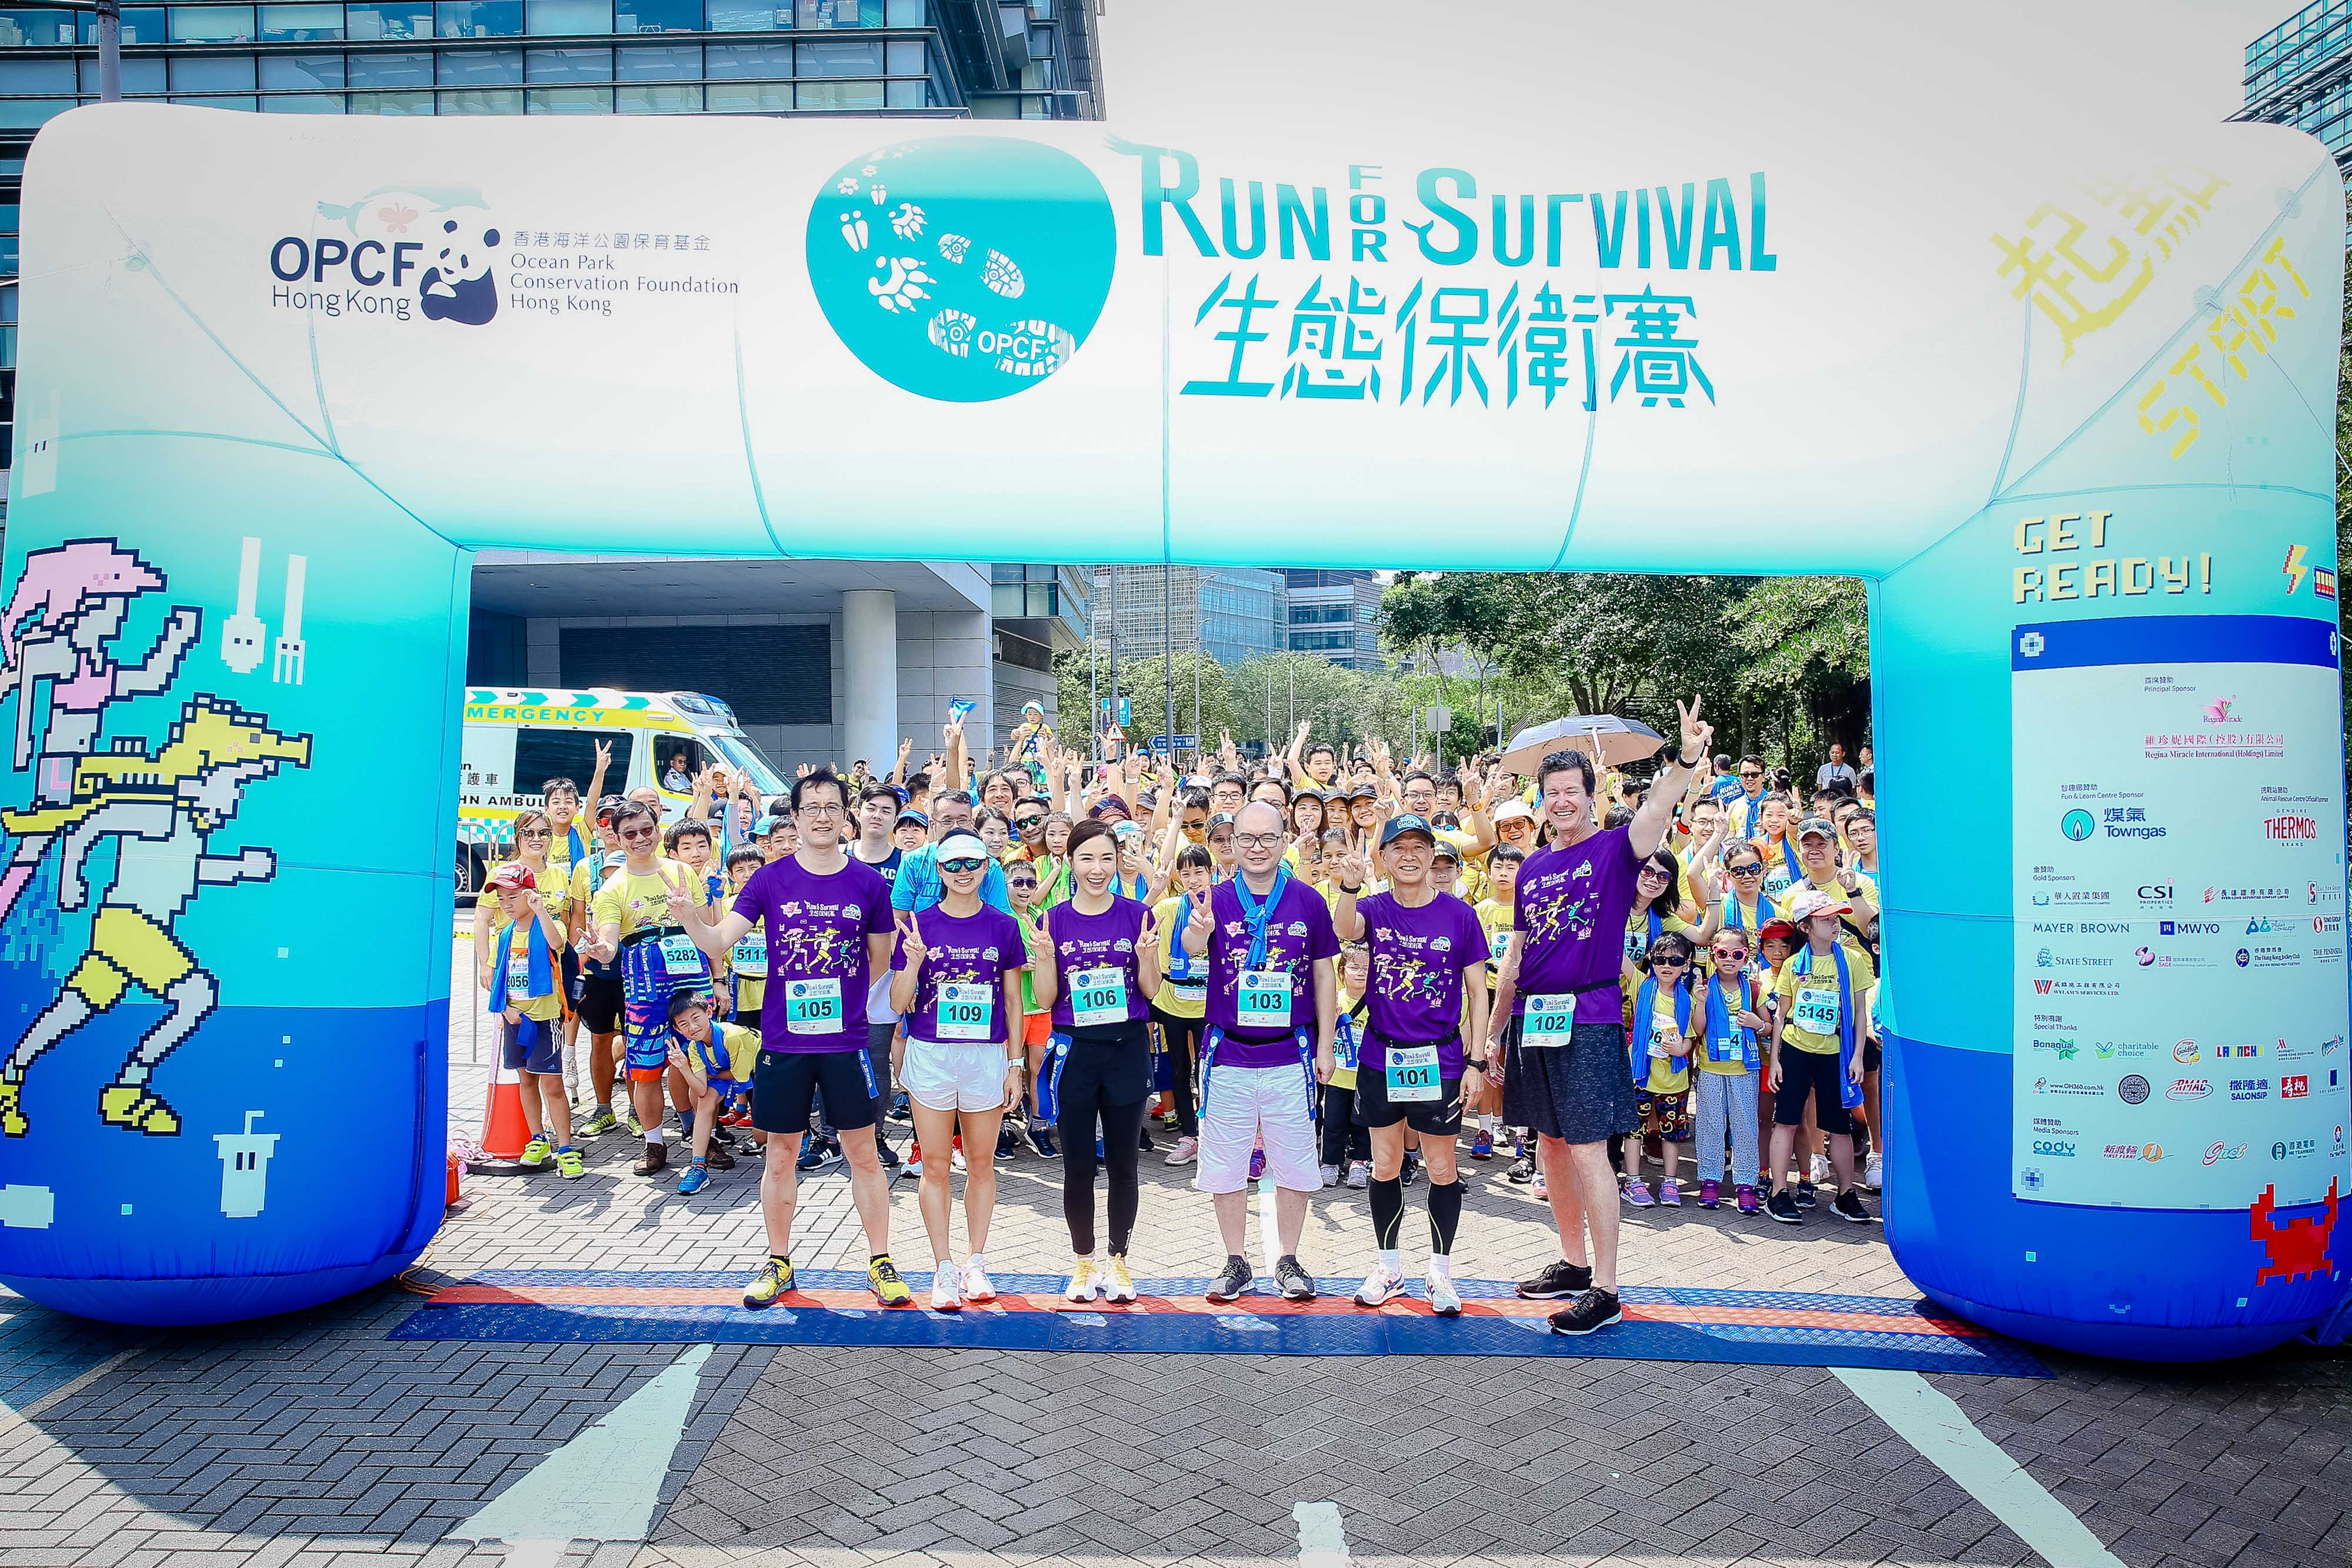 Play Concept - Play Concept supported OPCFHK Run for Survival 2019 - 1